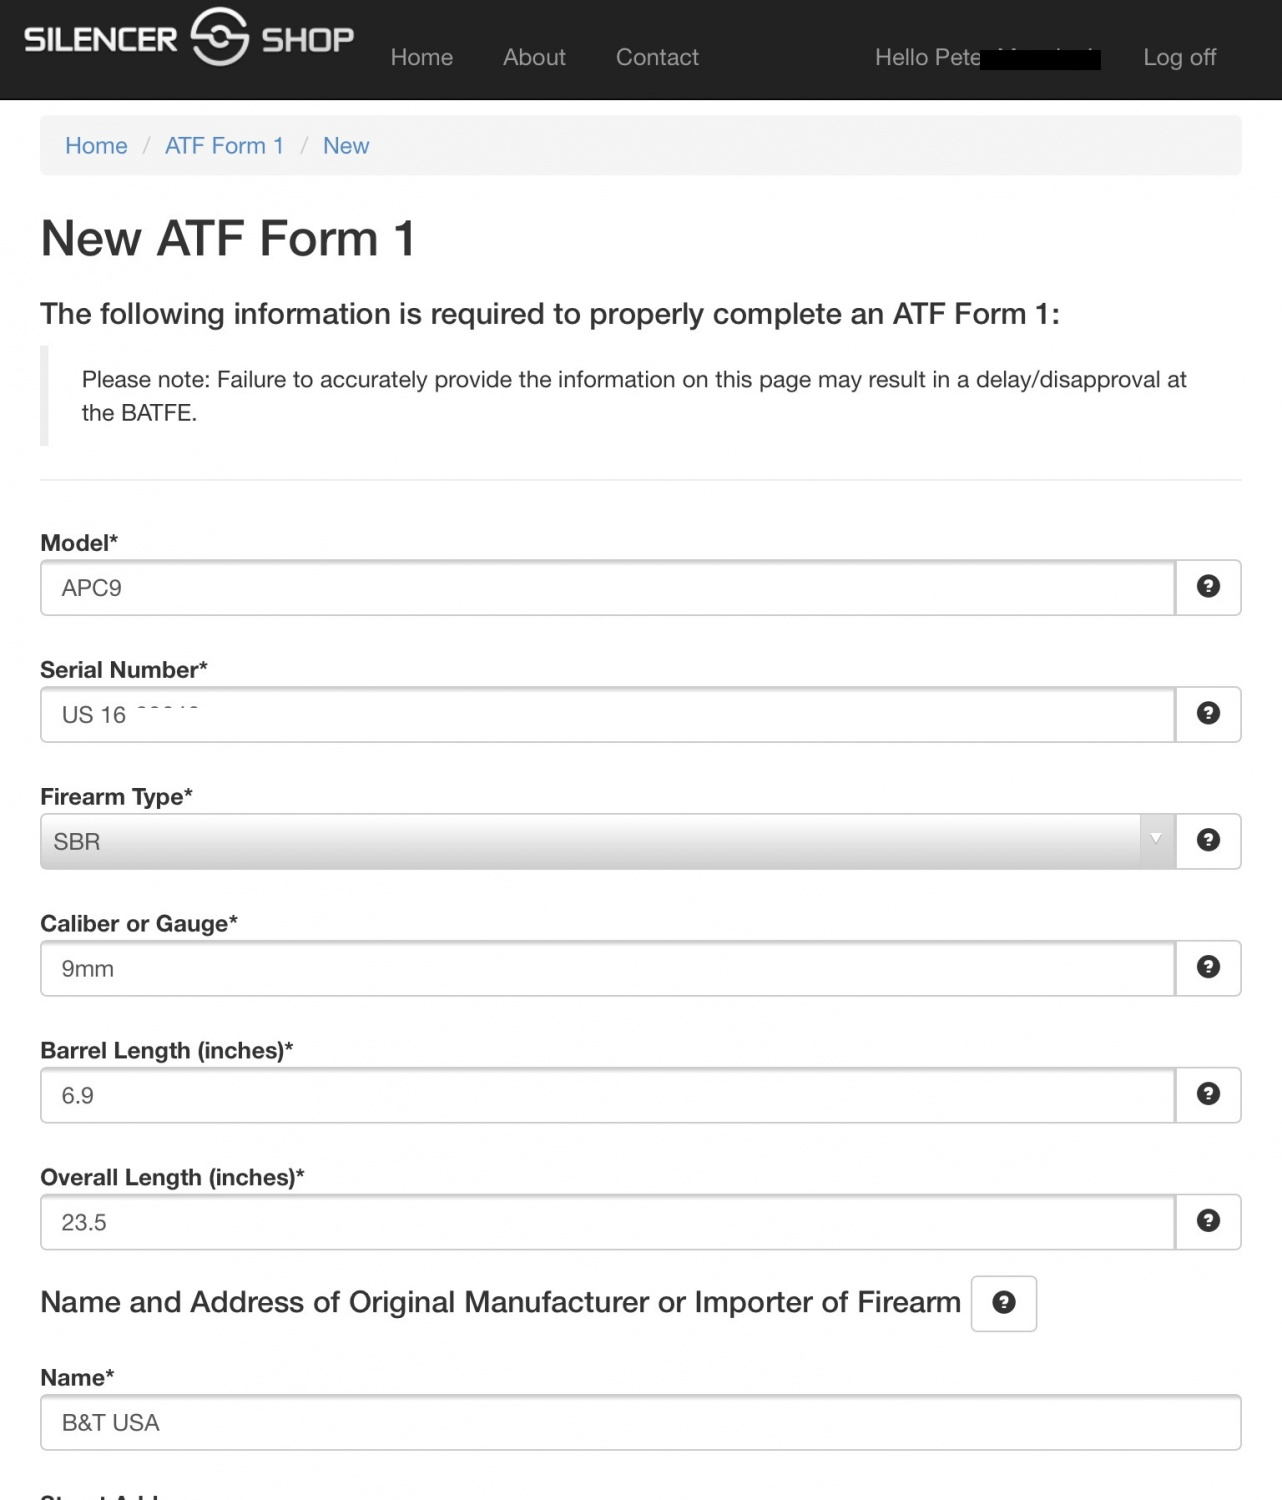 IMG_9530 Atf Form Sbr Example on atf form 1 reason, utah ccw form example, atf form 1 trust engraving, atf form 2 example, ar nfa form 1 sbr example, atf form 1 approved, duplicate title form example,